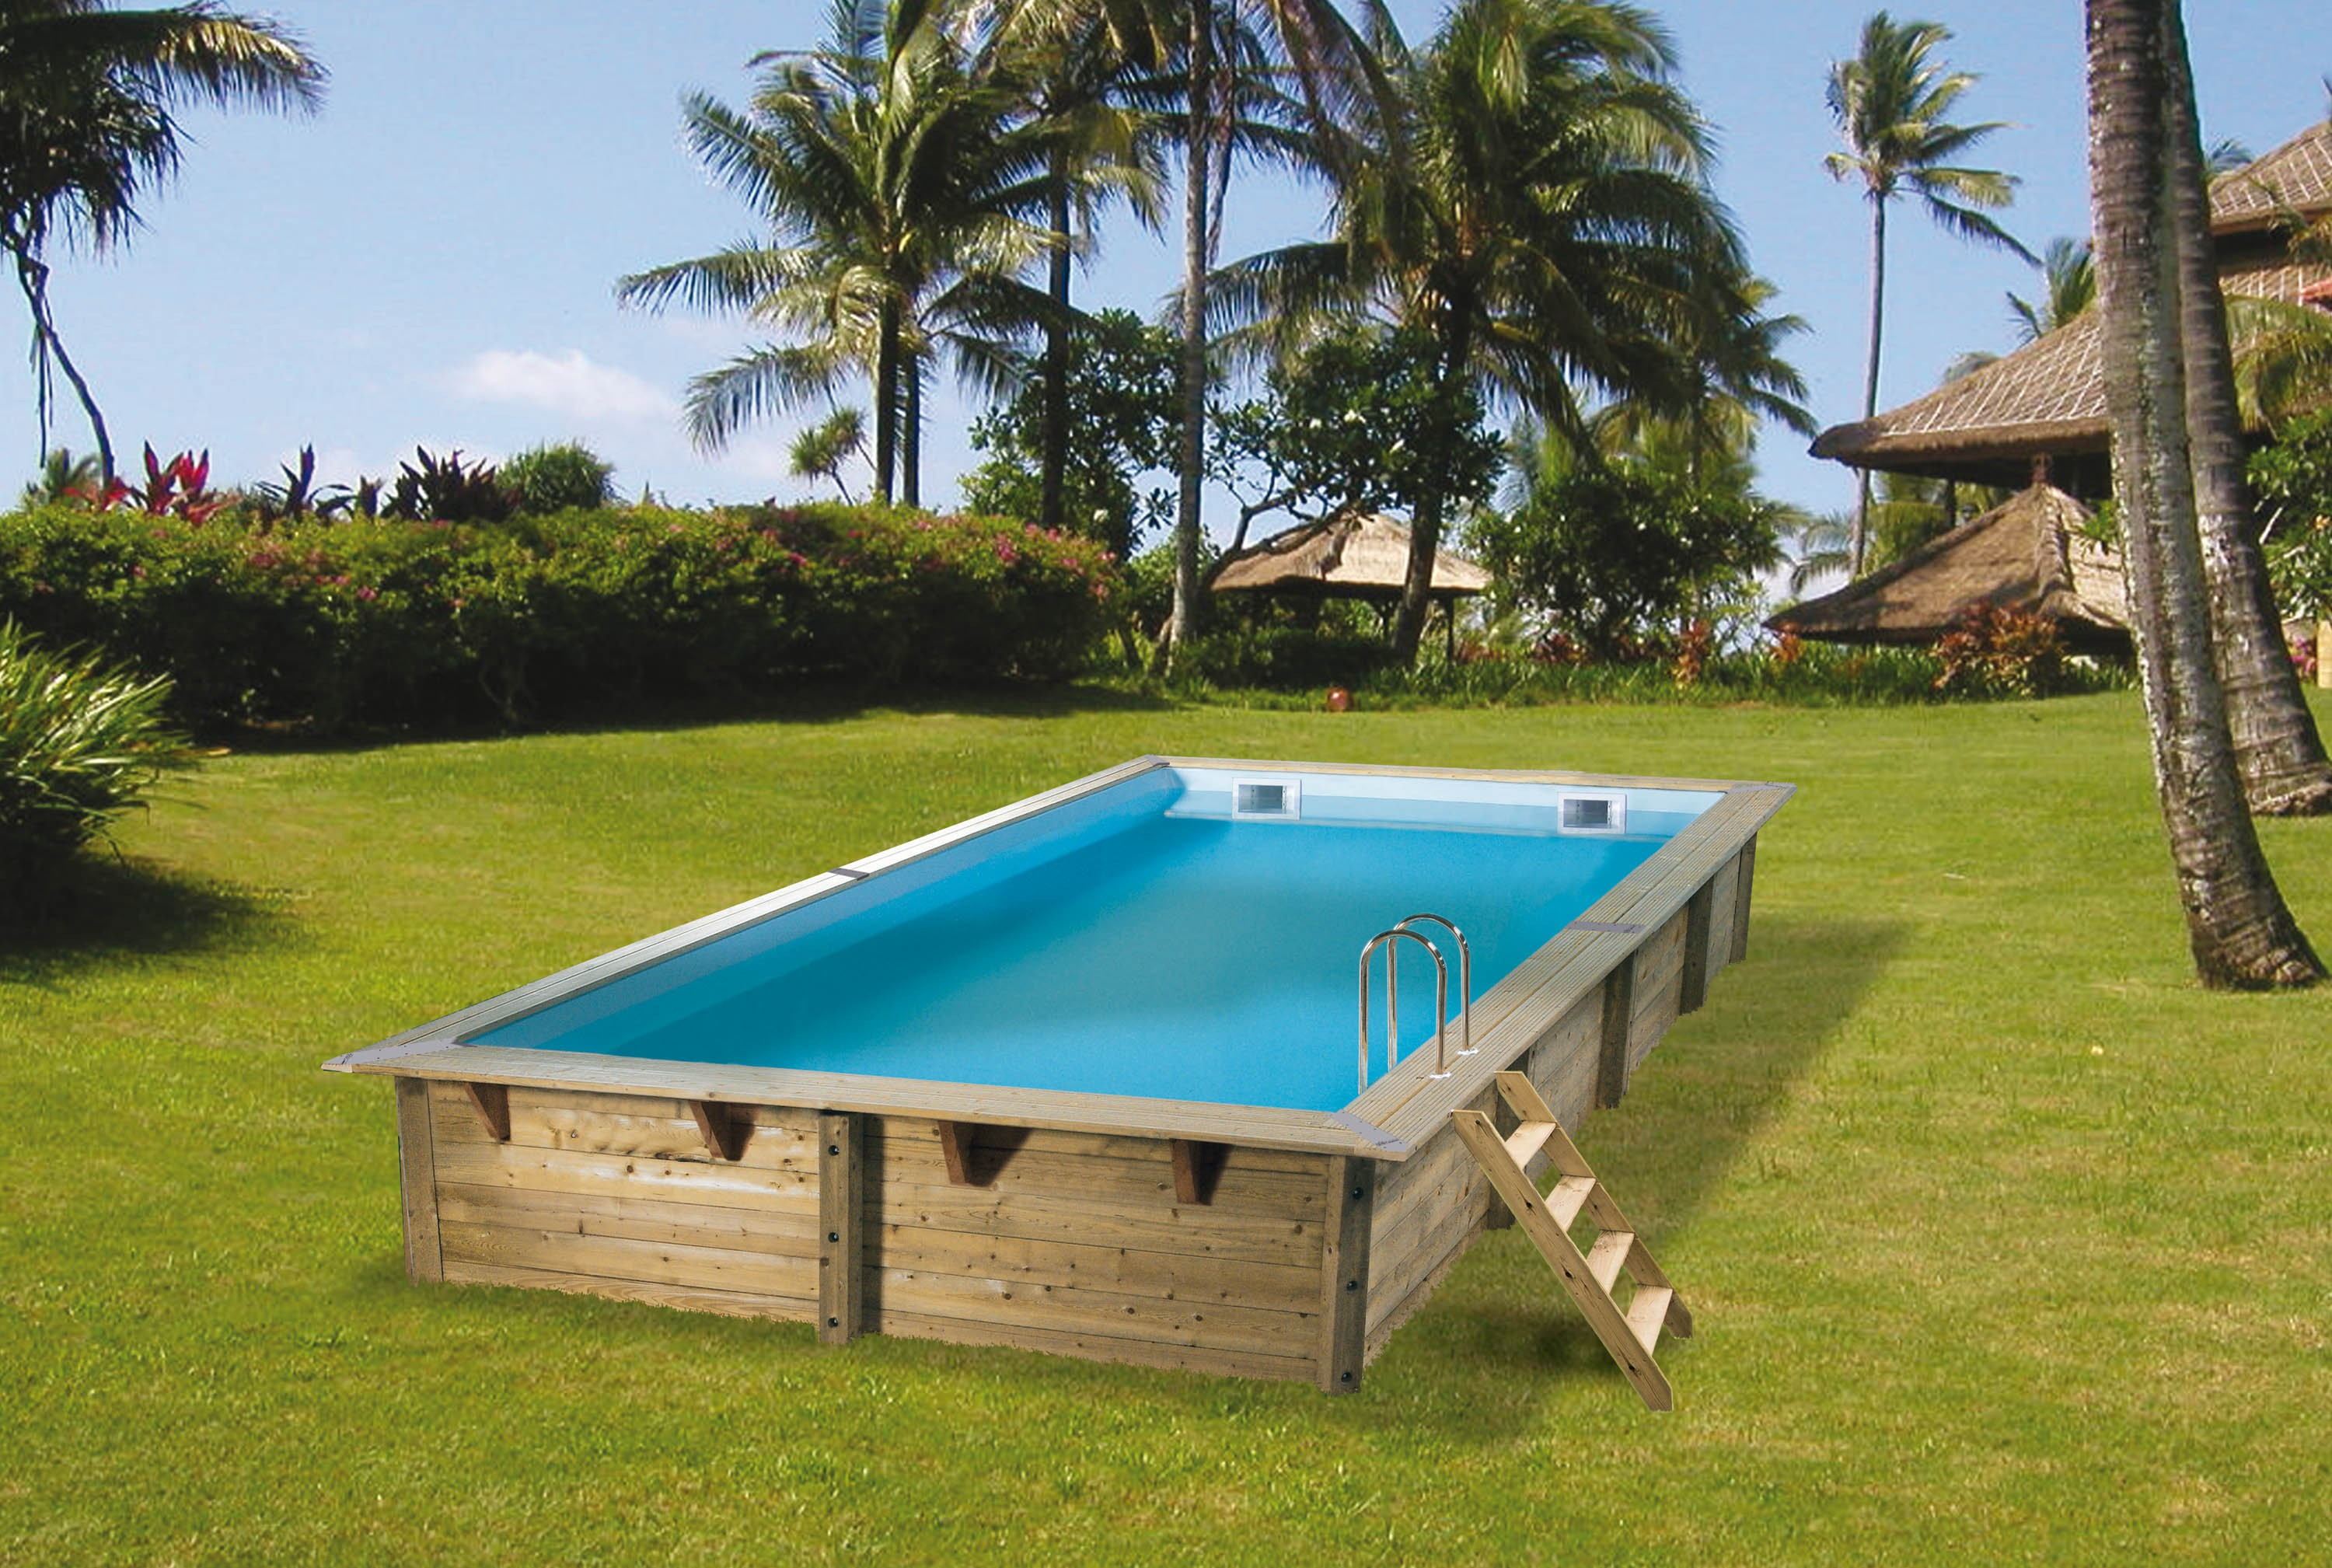 Piscine bois ubbink linea rectangulaire en kit for Montage piscine bois